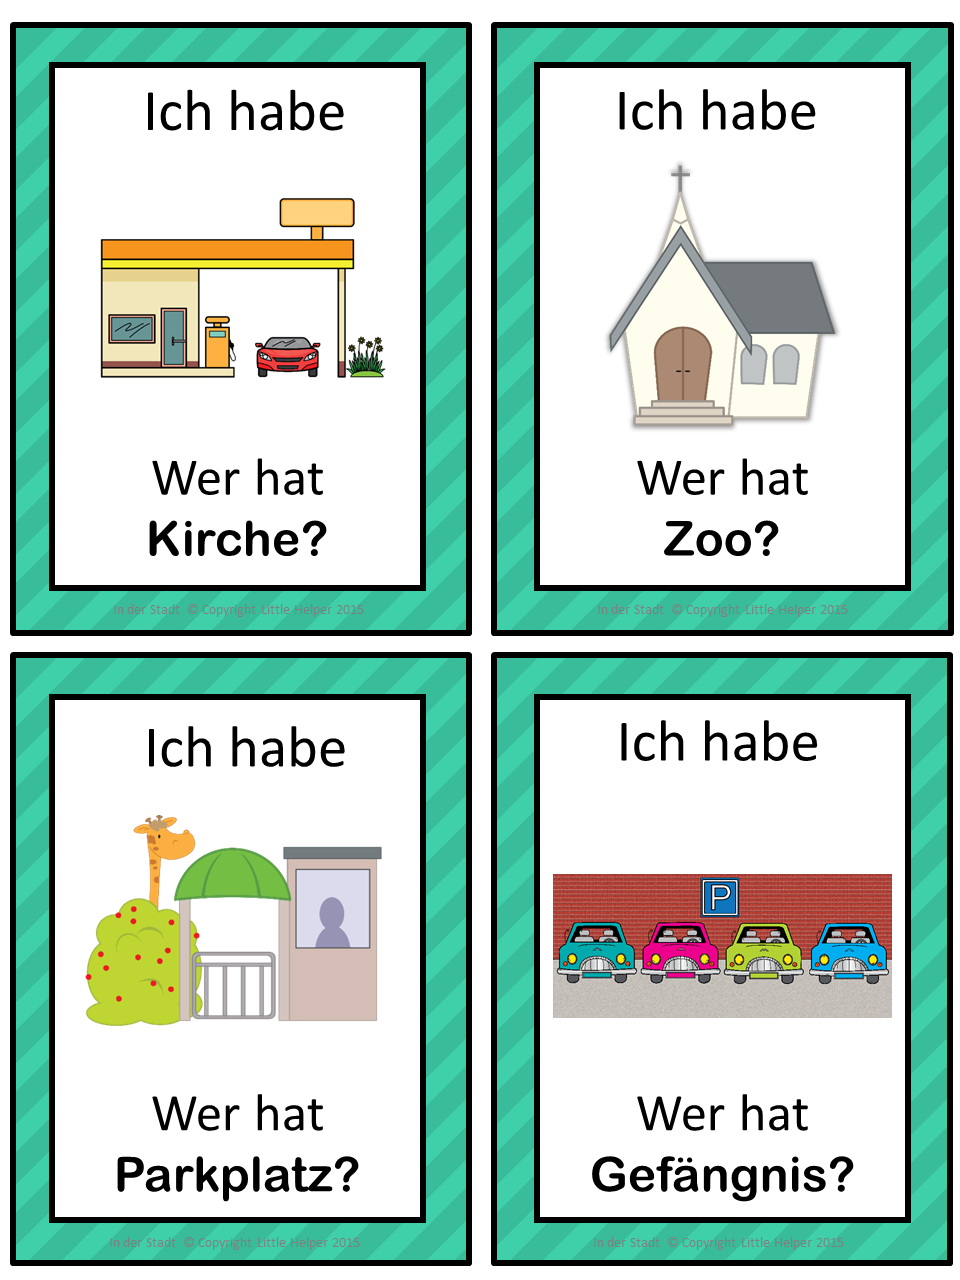 German In Town Ich Habe Wer Hat Game German Language Learning Learn German German Language